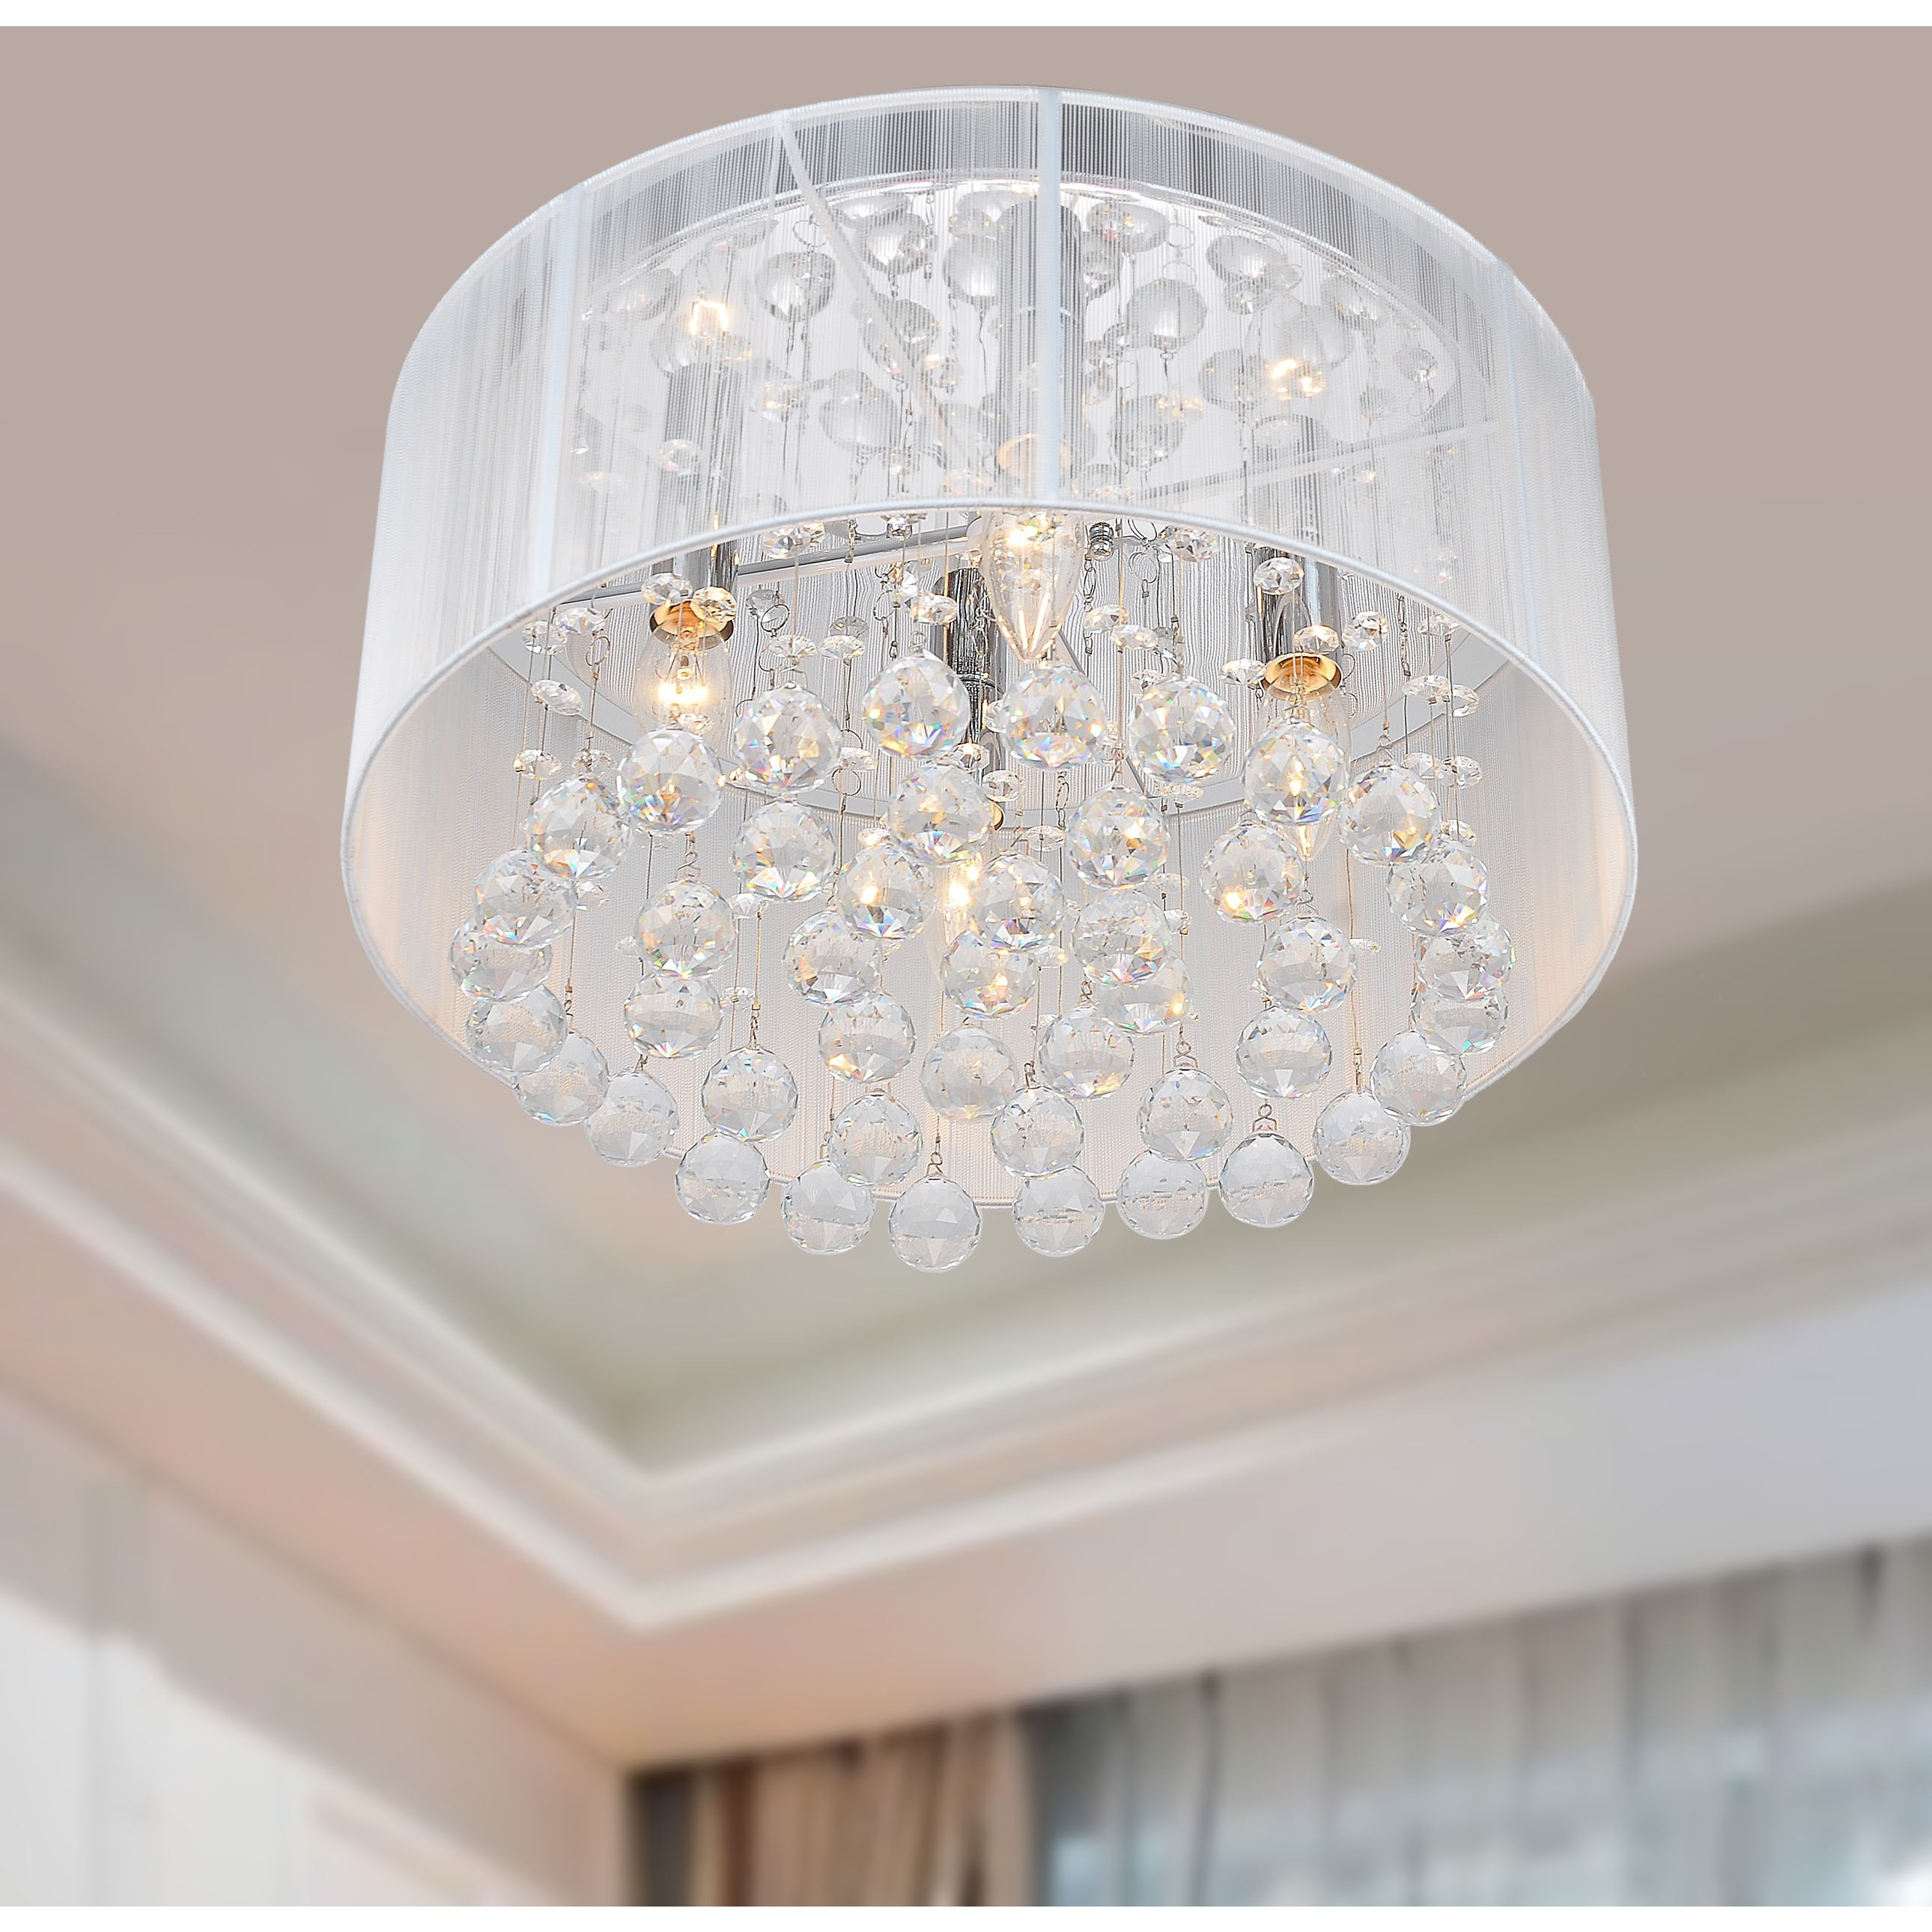 The Lighting Store Flushmount 4 Light Chrome And White Crystal Pertaining To 4light Chrome Crystal Chandeliers (Image 15 of 25)